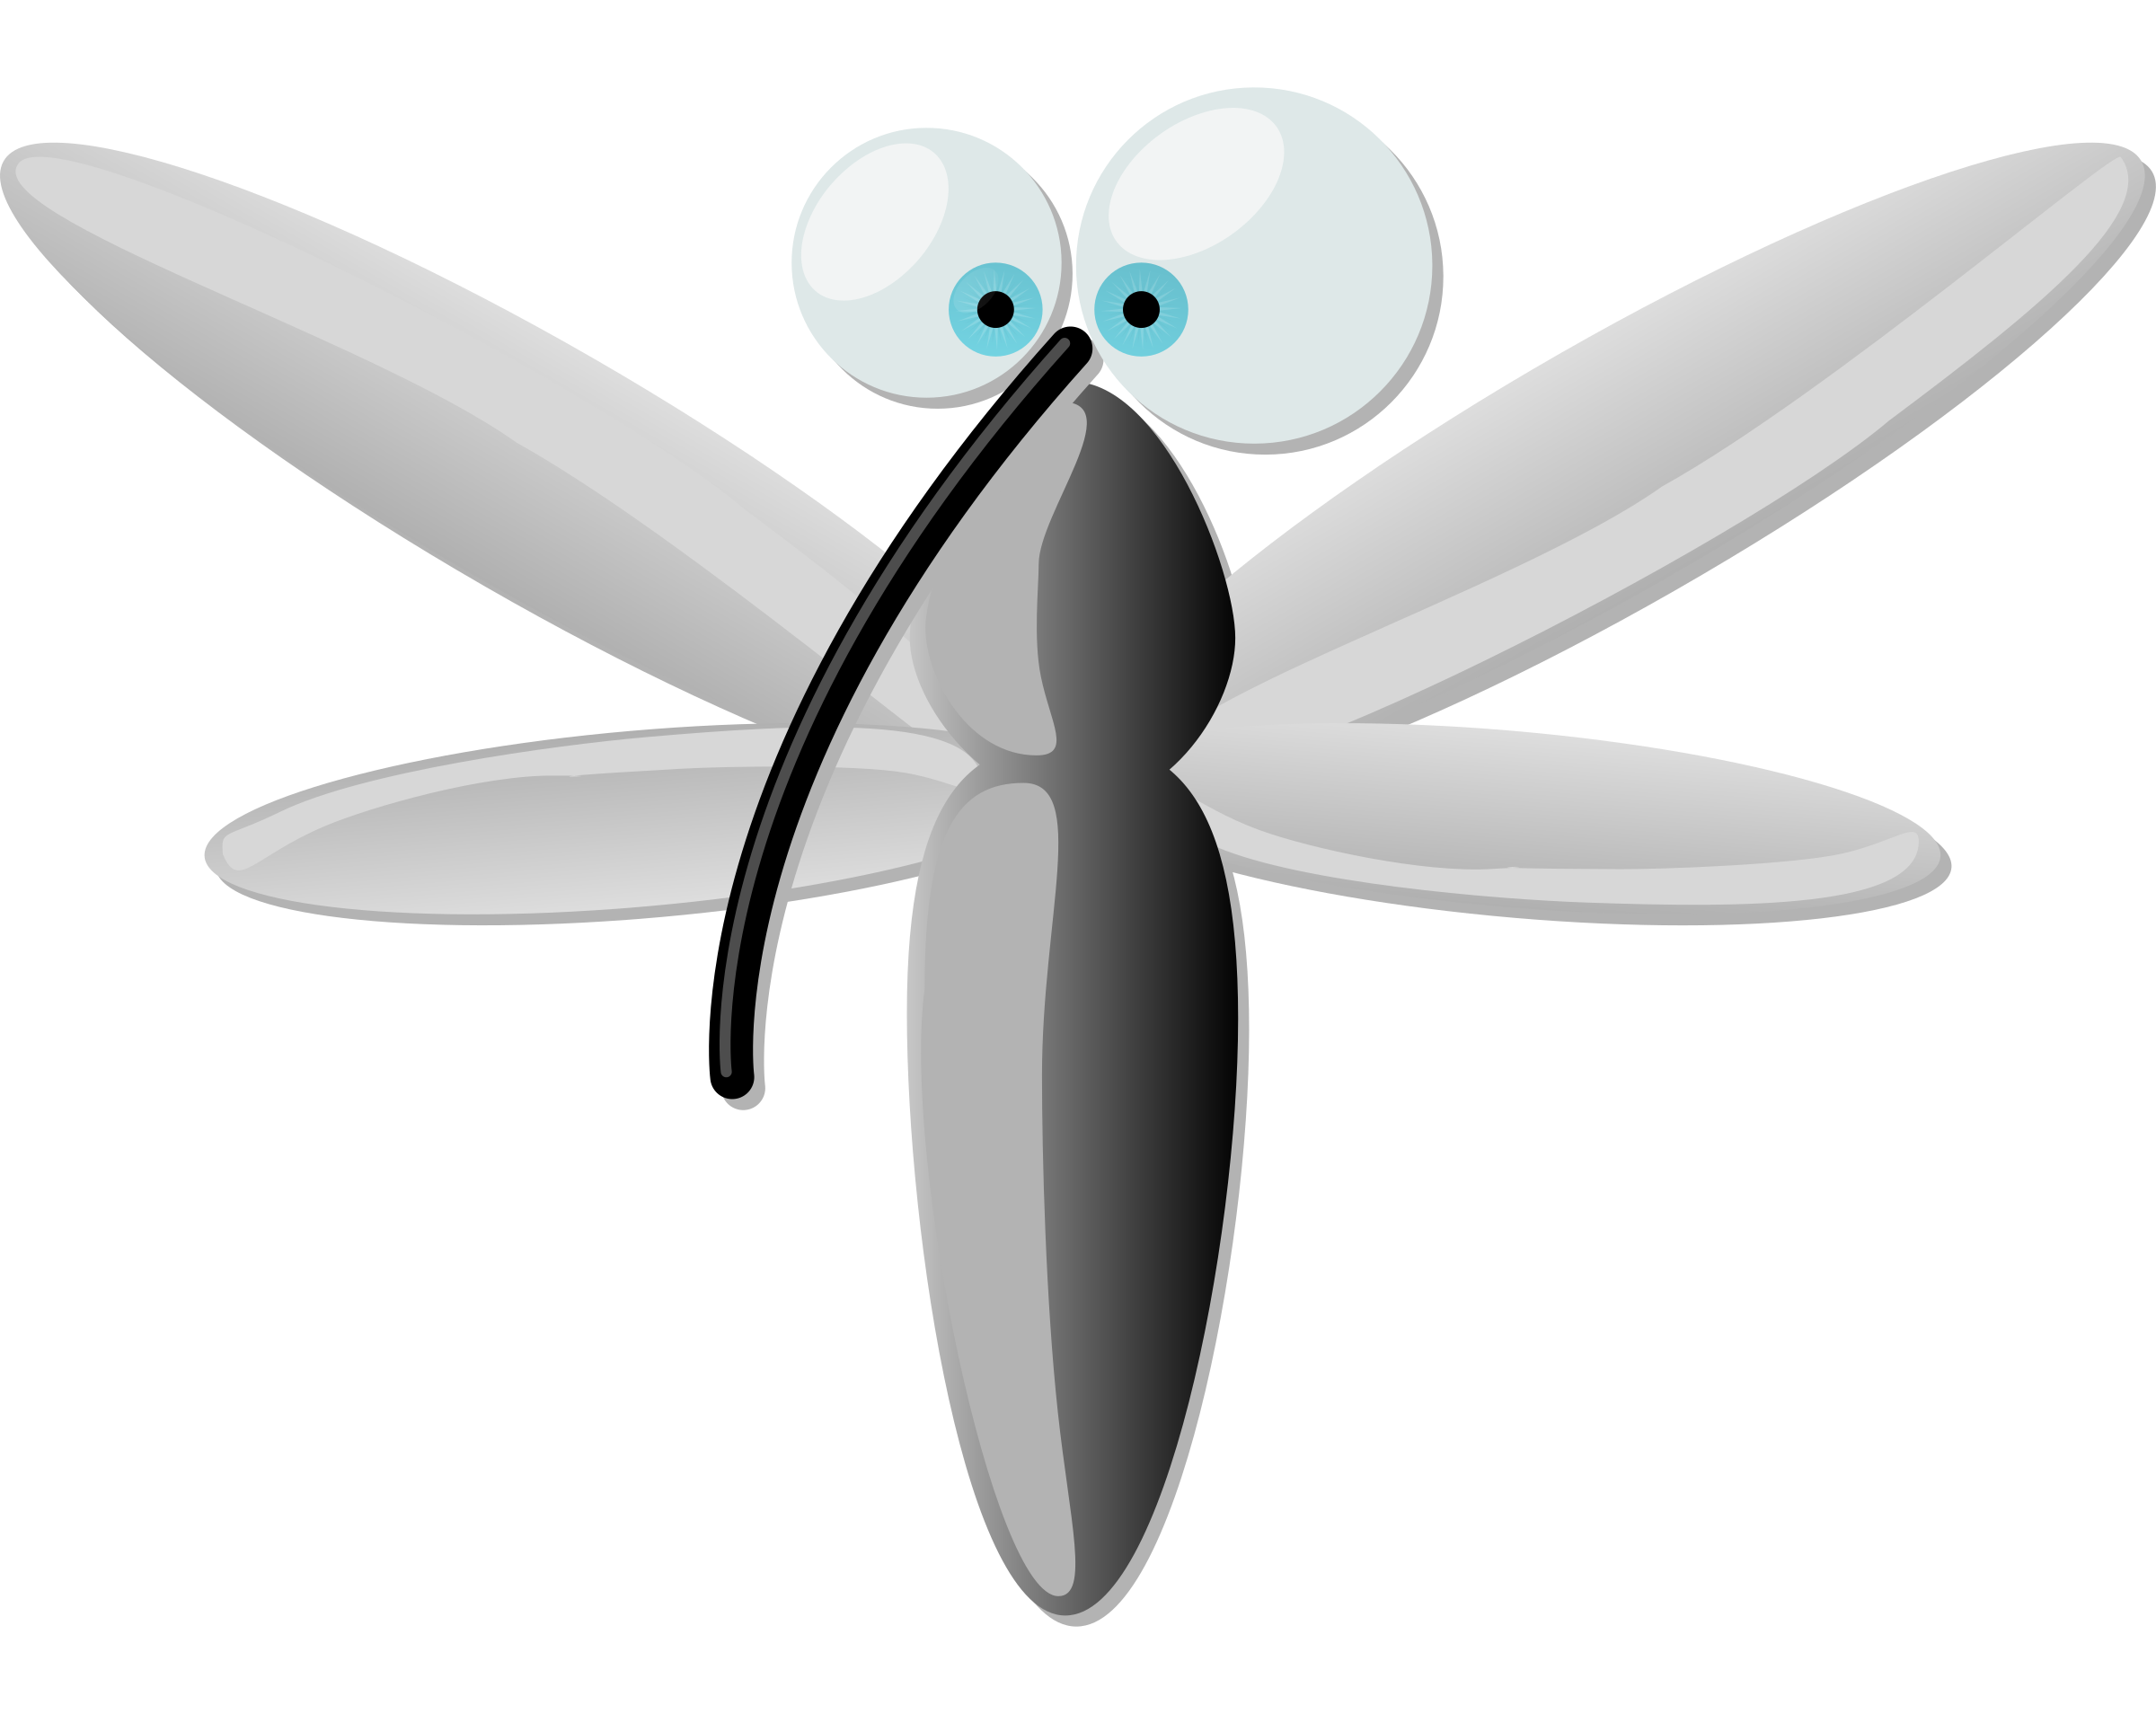 Mosquito by Moskito7